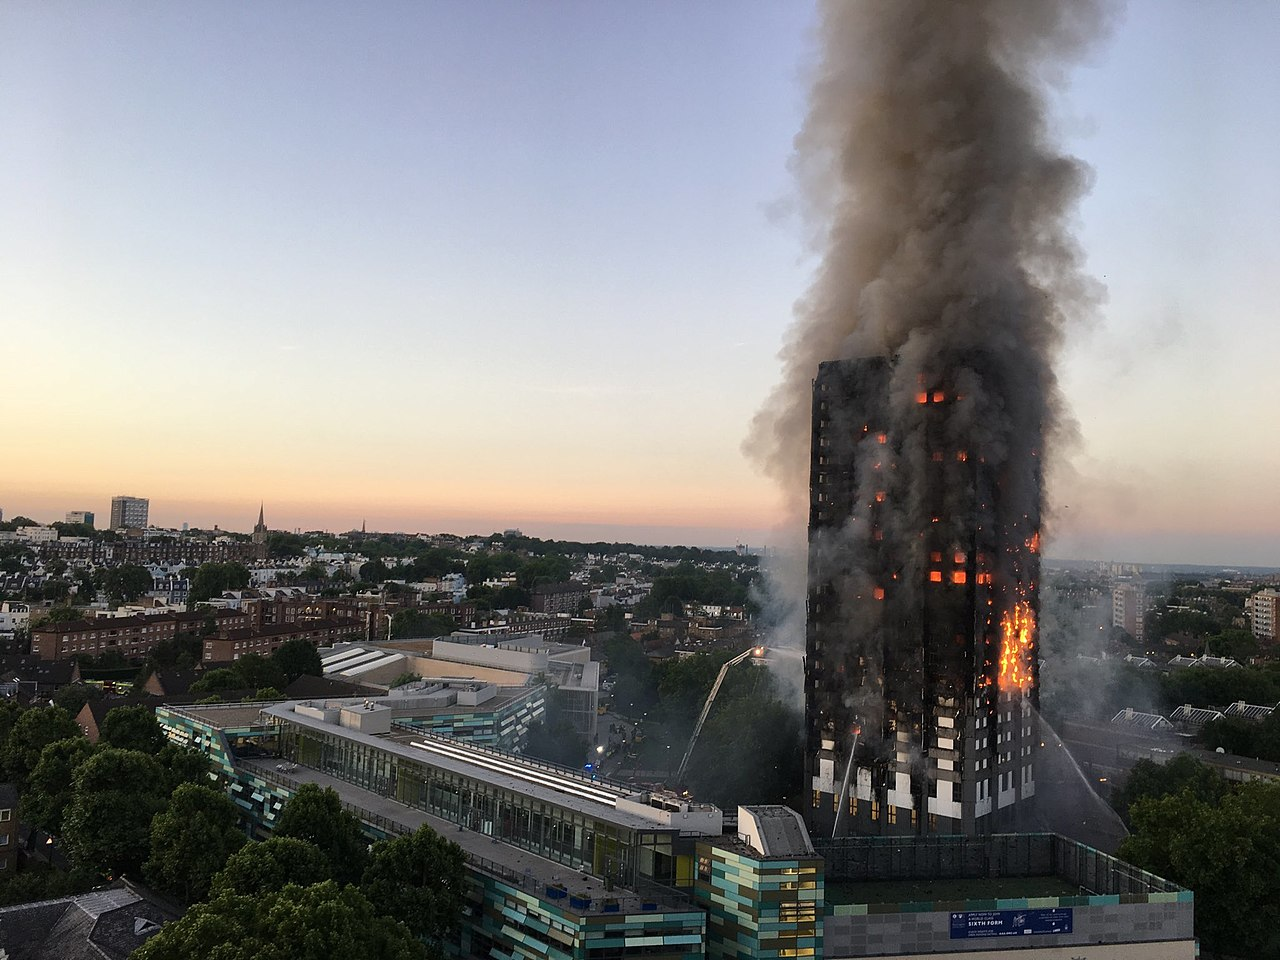 Countless Fire Safety Hazards in Tower Blocks Across the Country